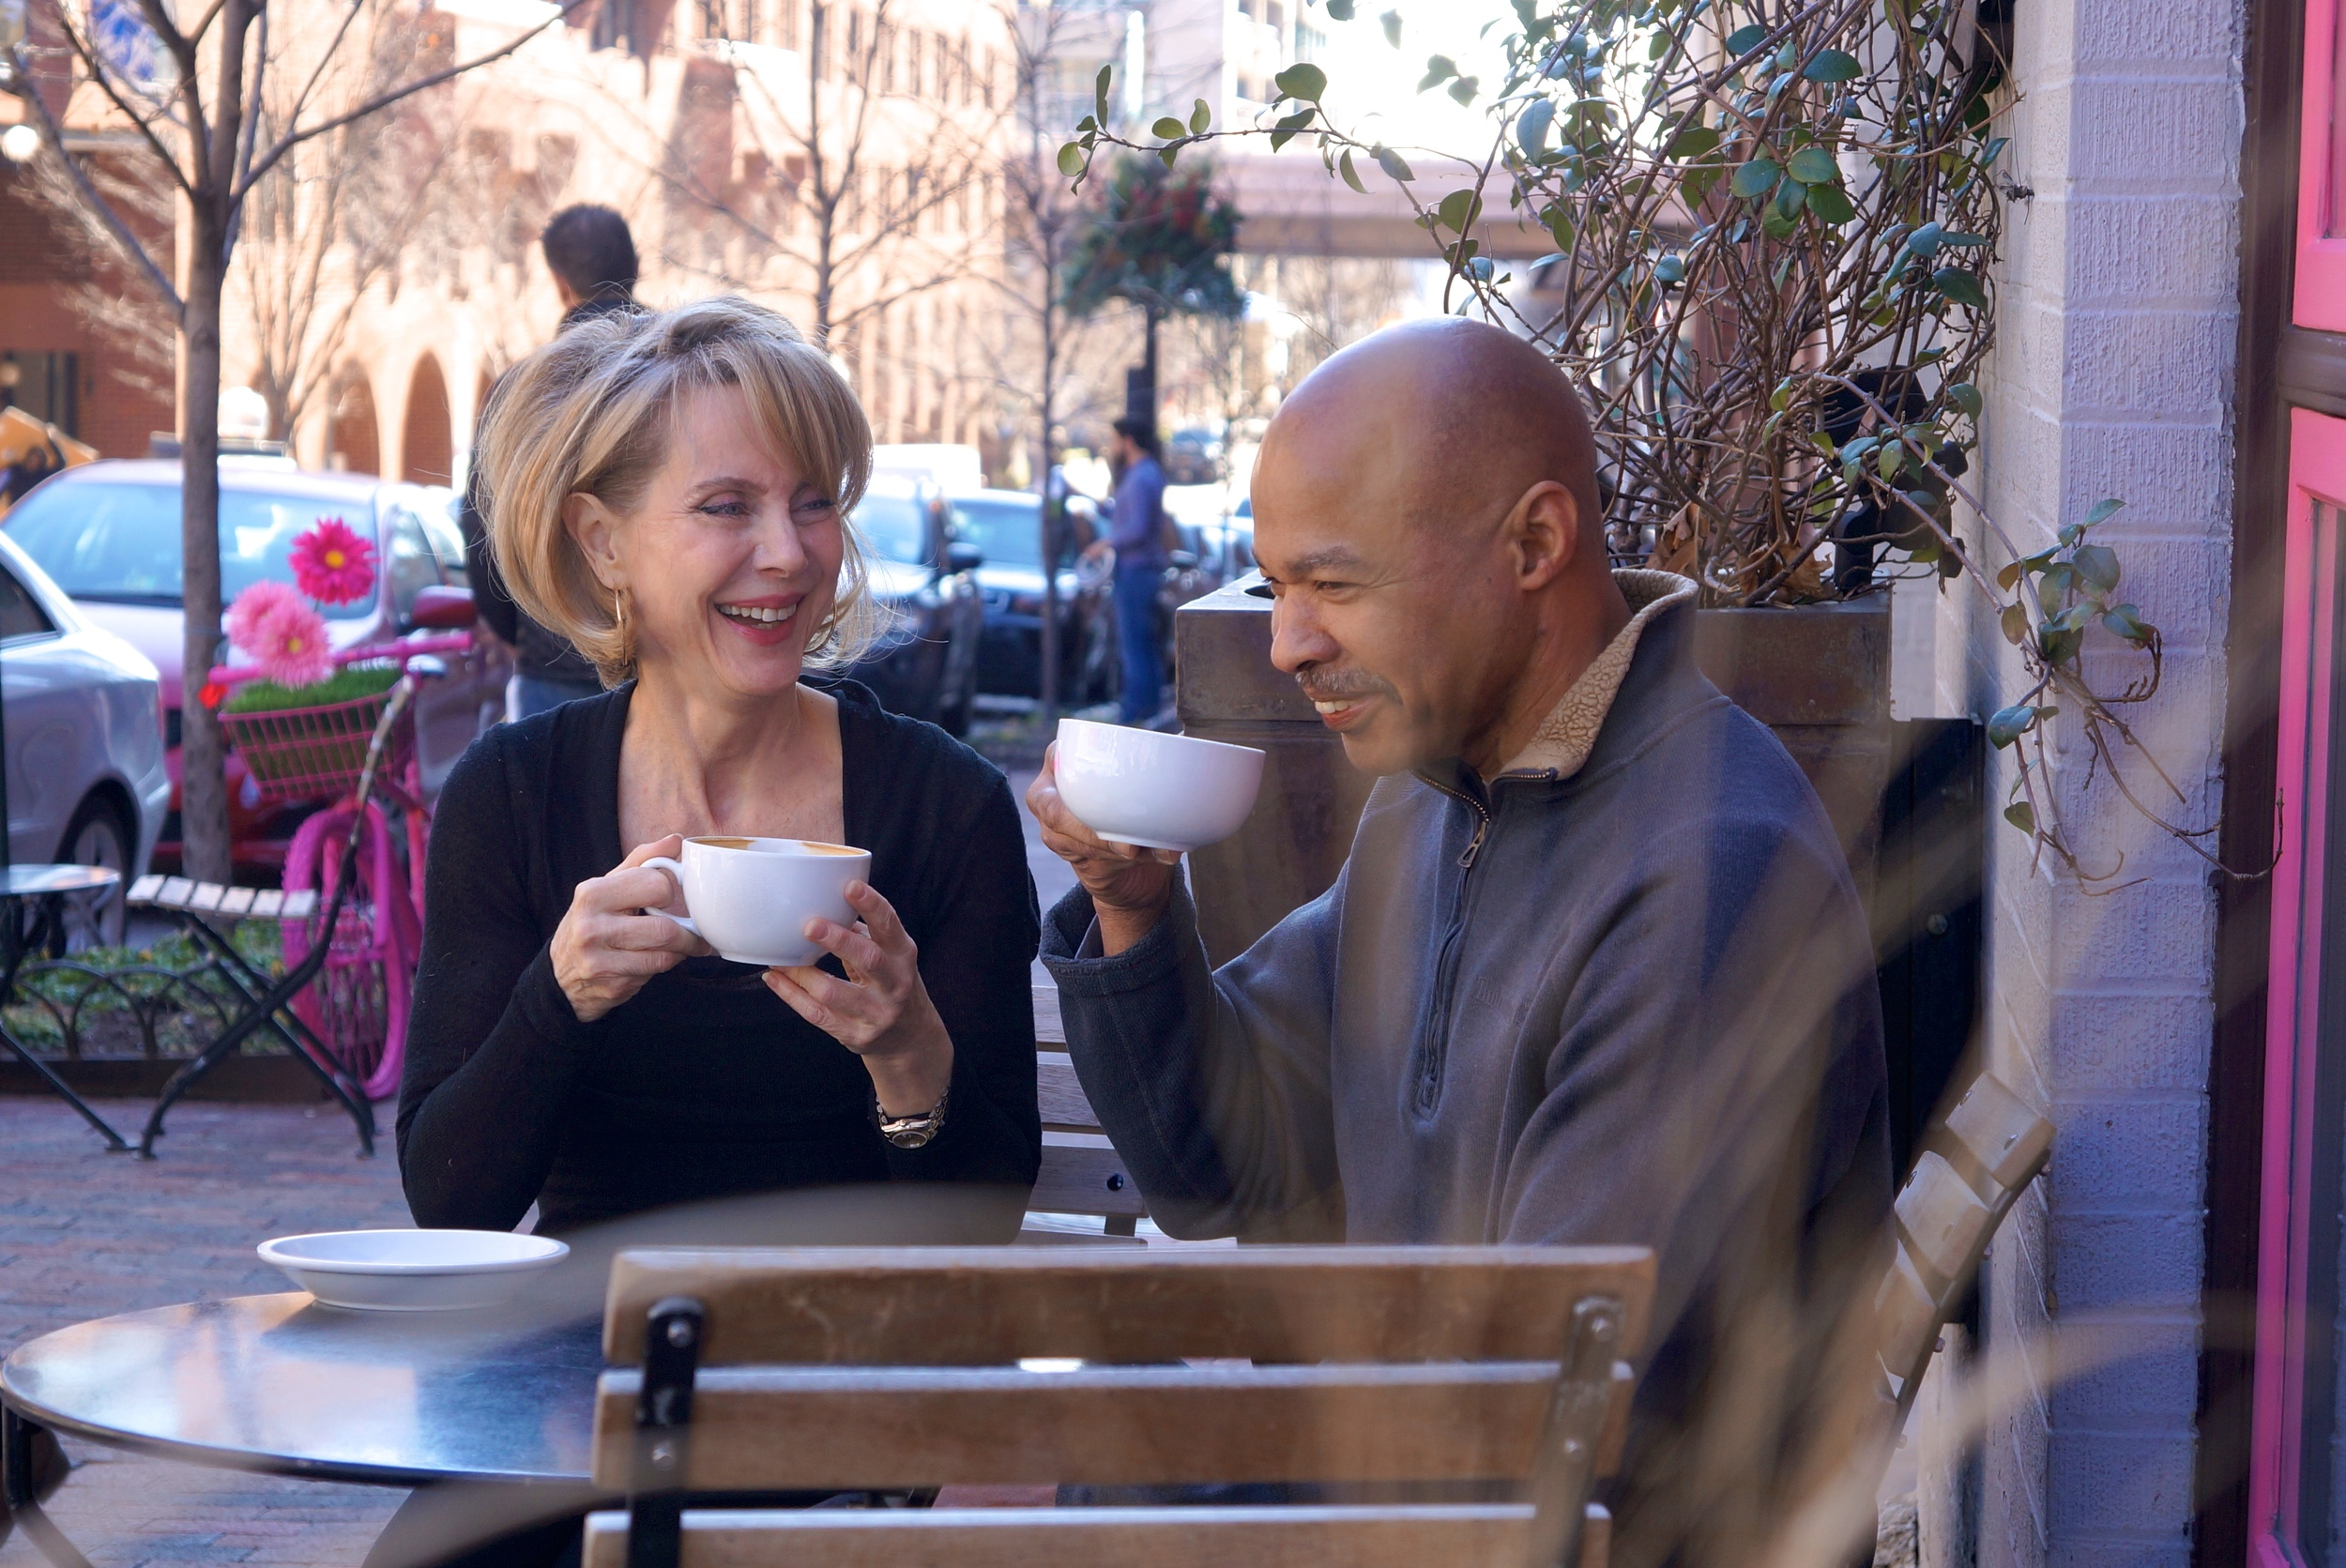 Katherine and Earl enjoying lattes from Definitions' neighbor Baked and Wired